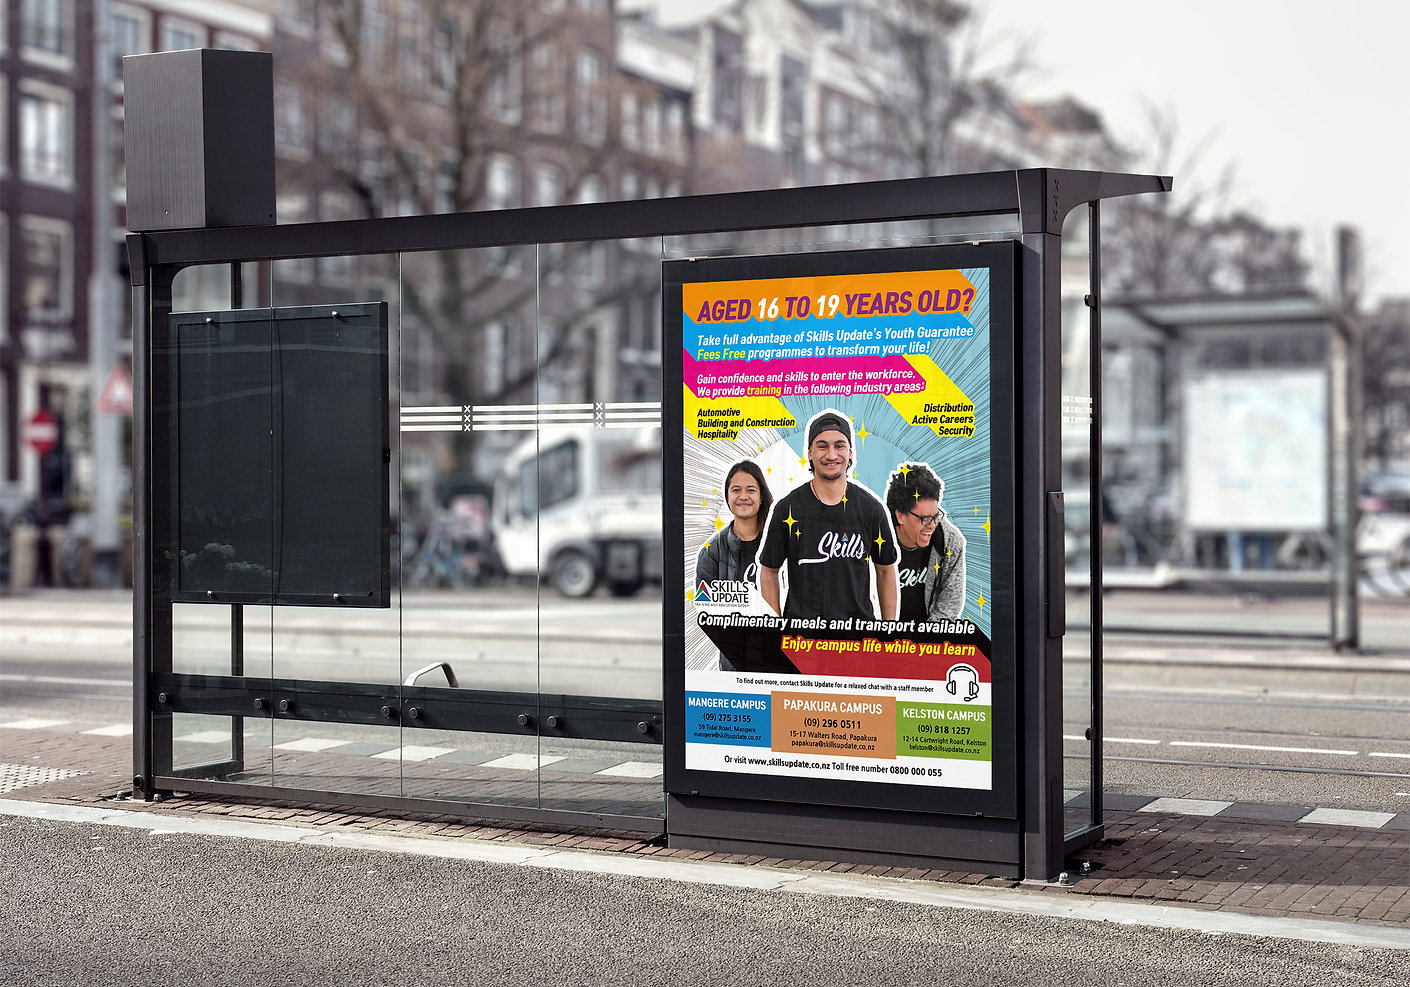 Bus-Stop-Billboard-MockUp-2.jpg